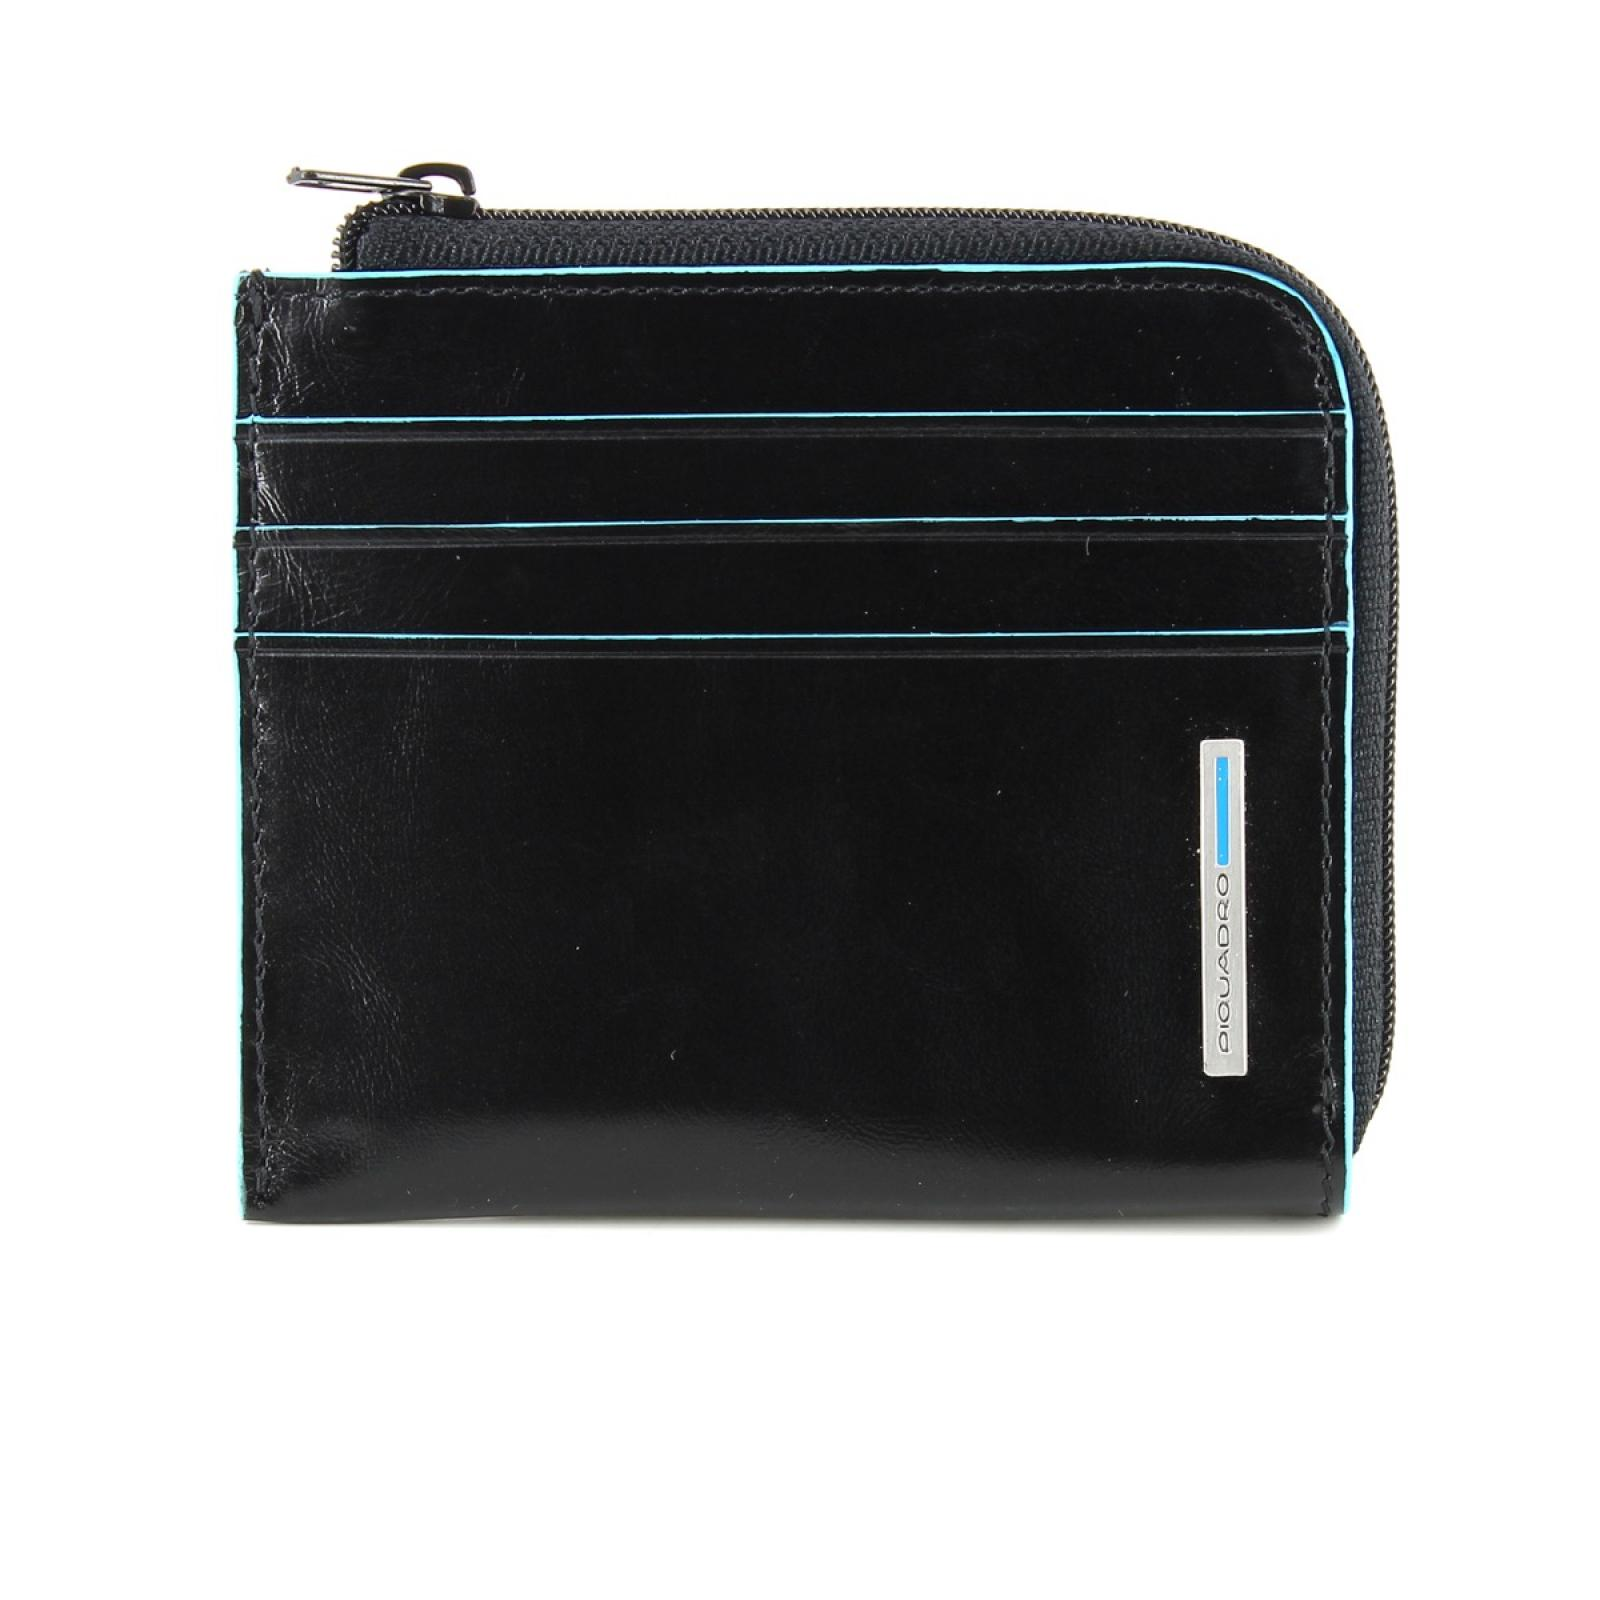 Blue Square Coin Purse